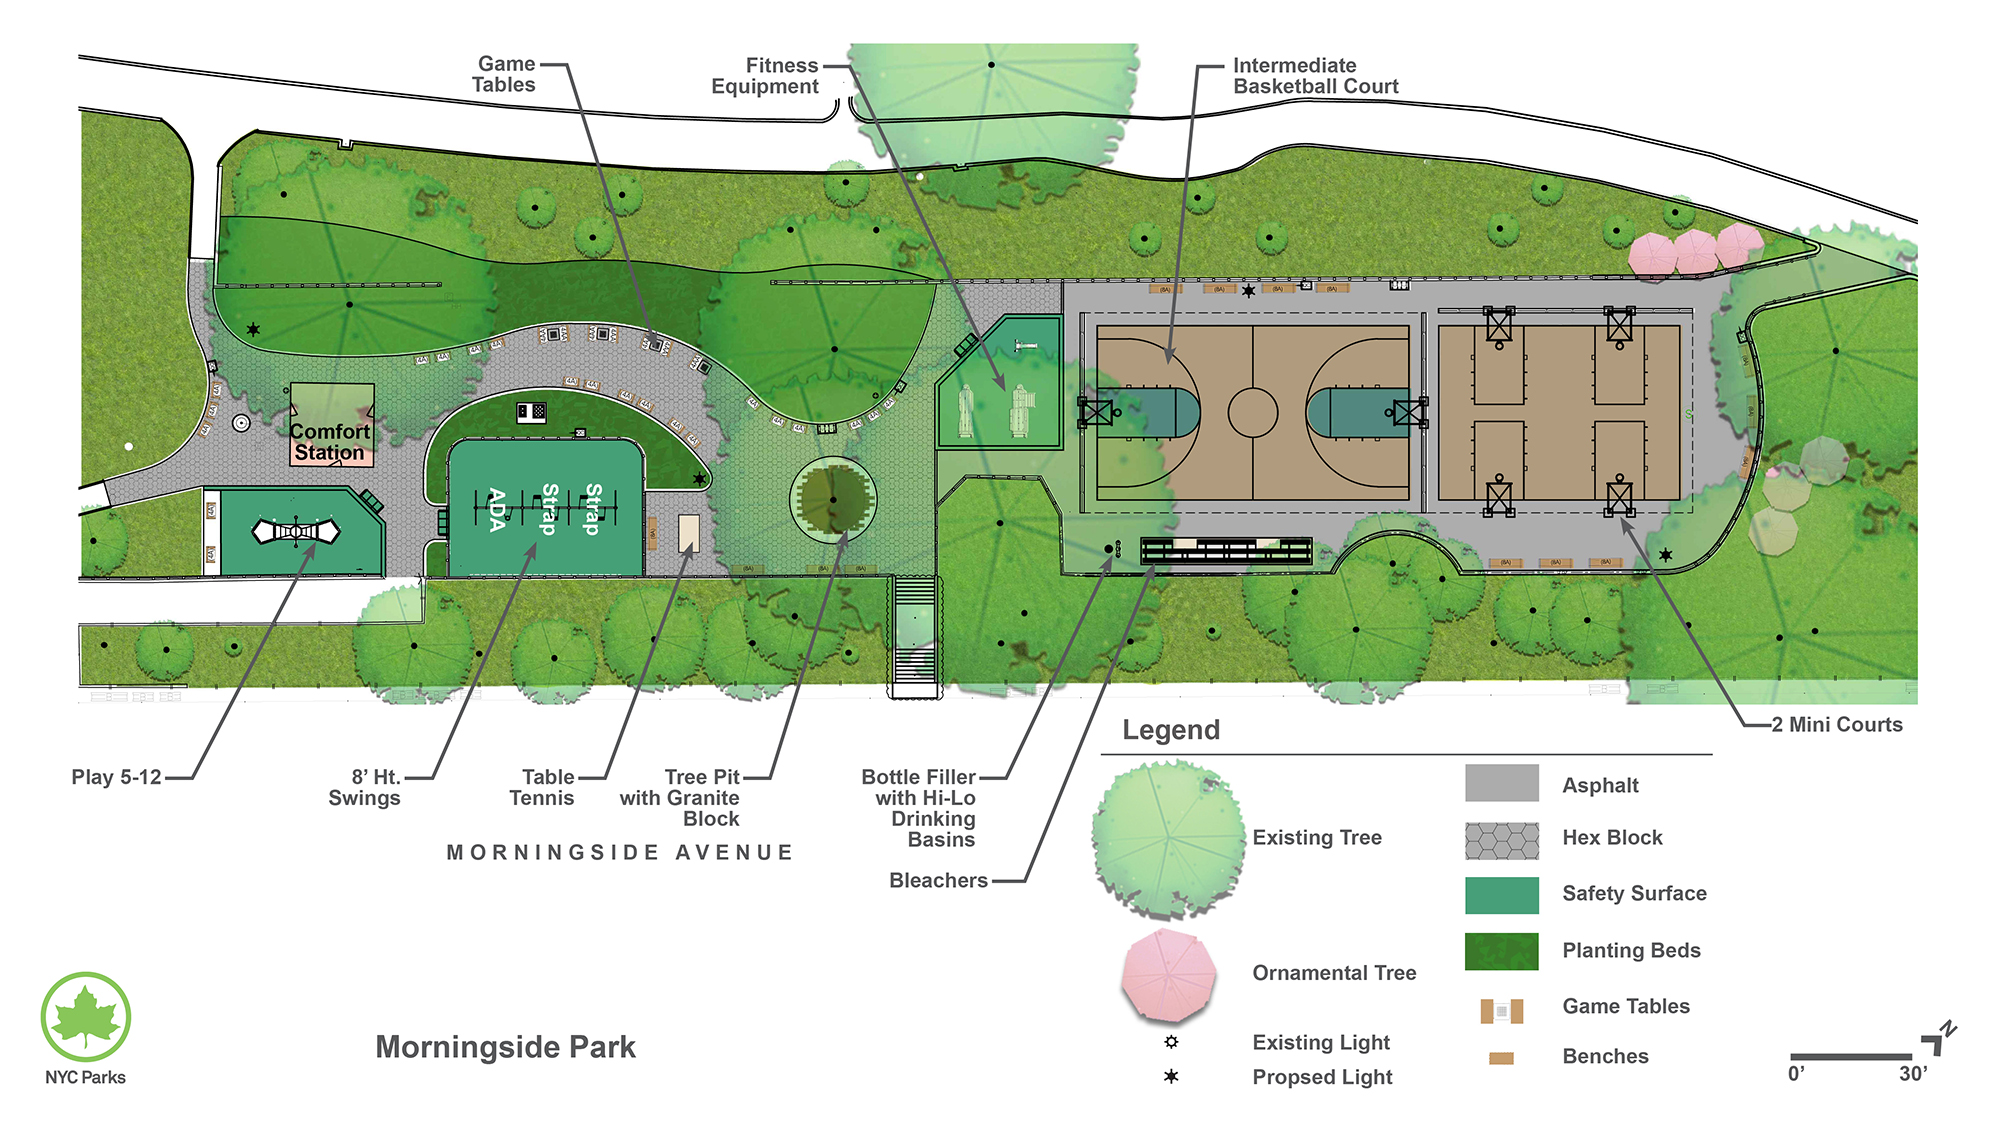 Design of Morningside Park Middle Playground and Basketball Courts Reconstruction